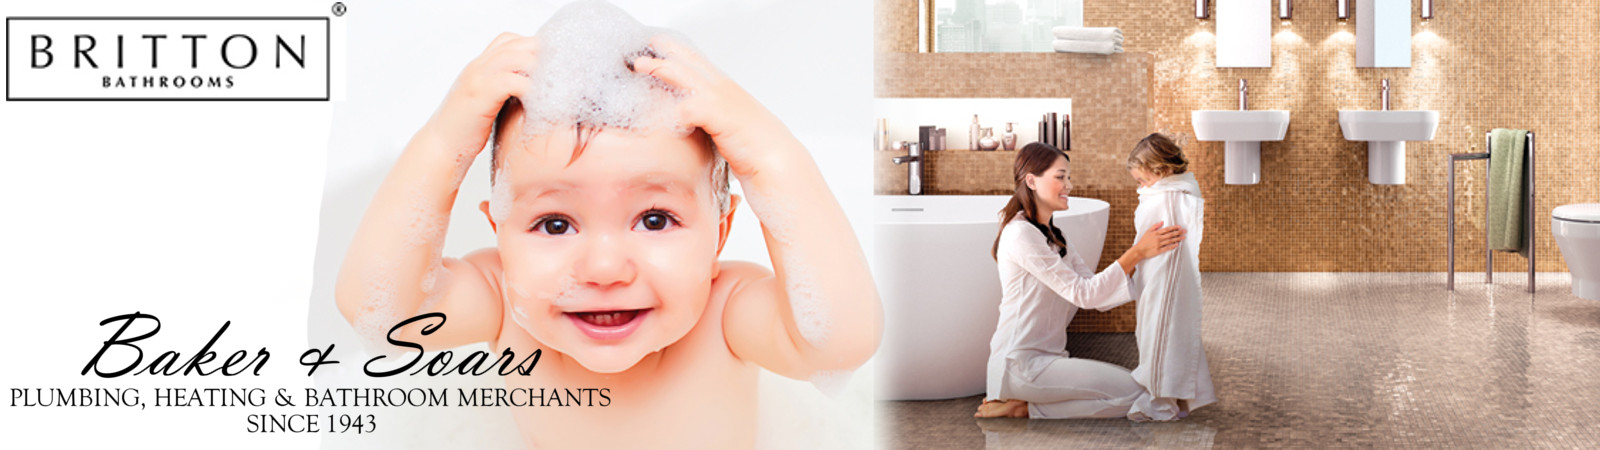 britton bathrooms baker and soars